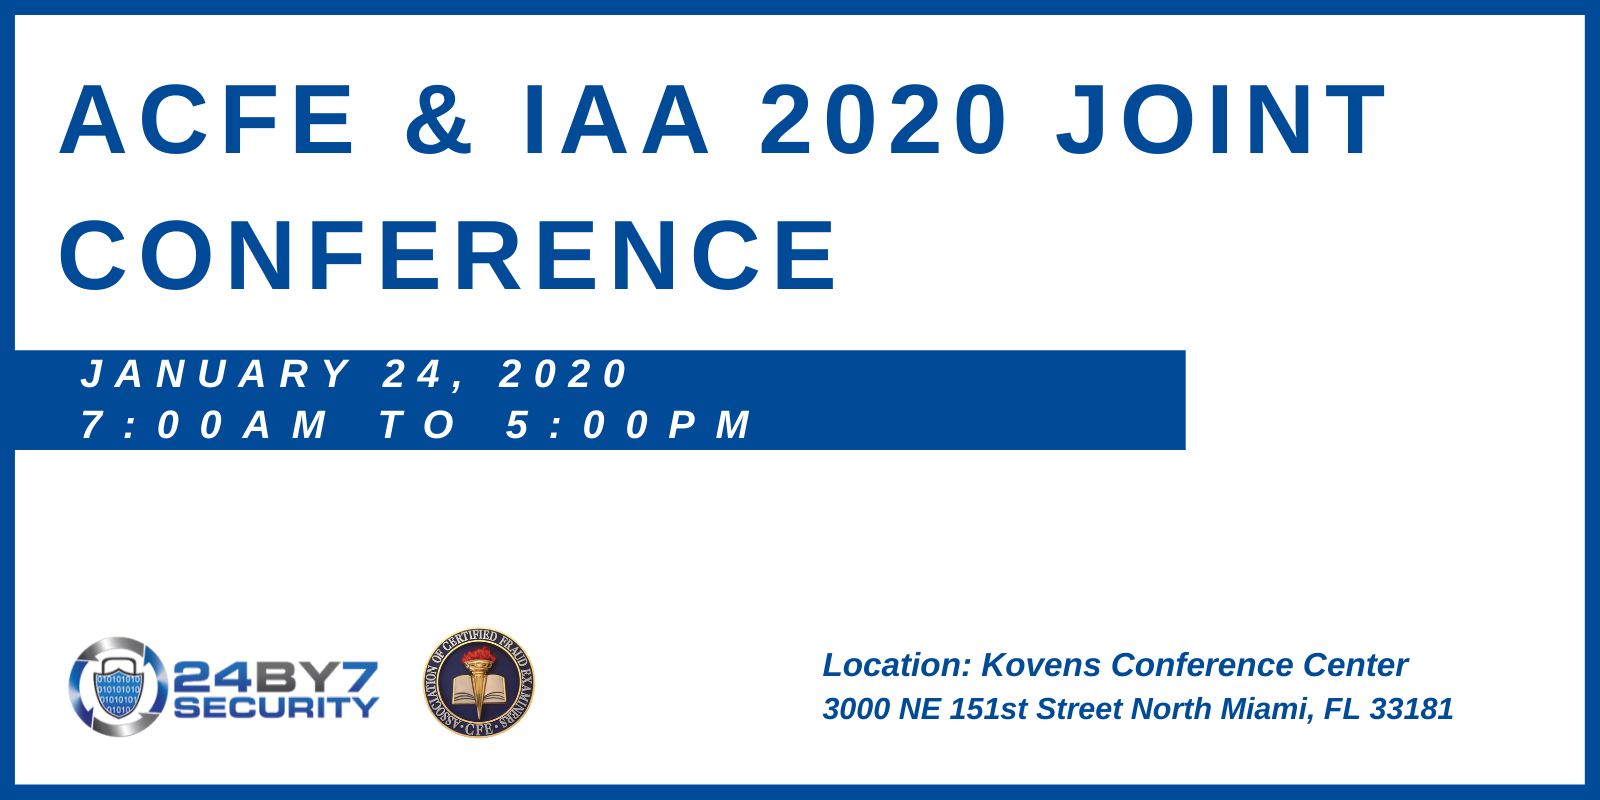 ACFE & IAA 2020 Joint Conference